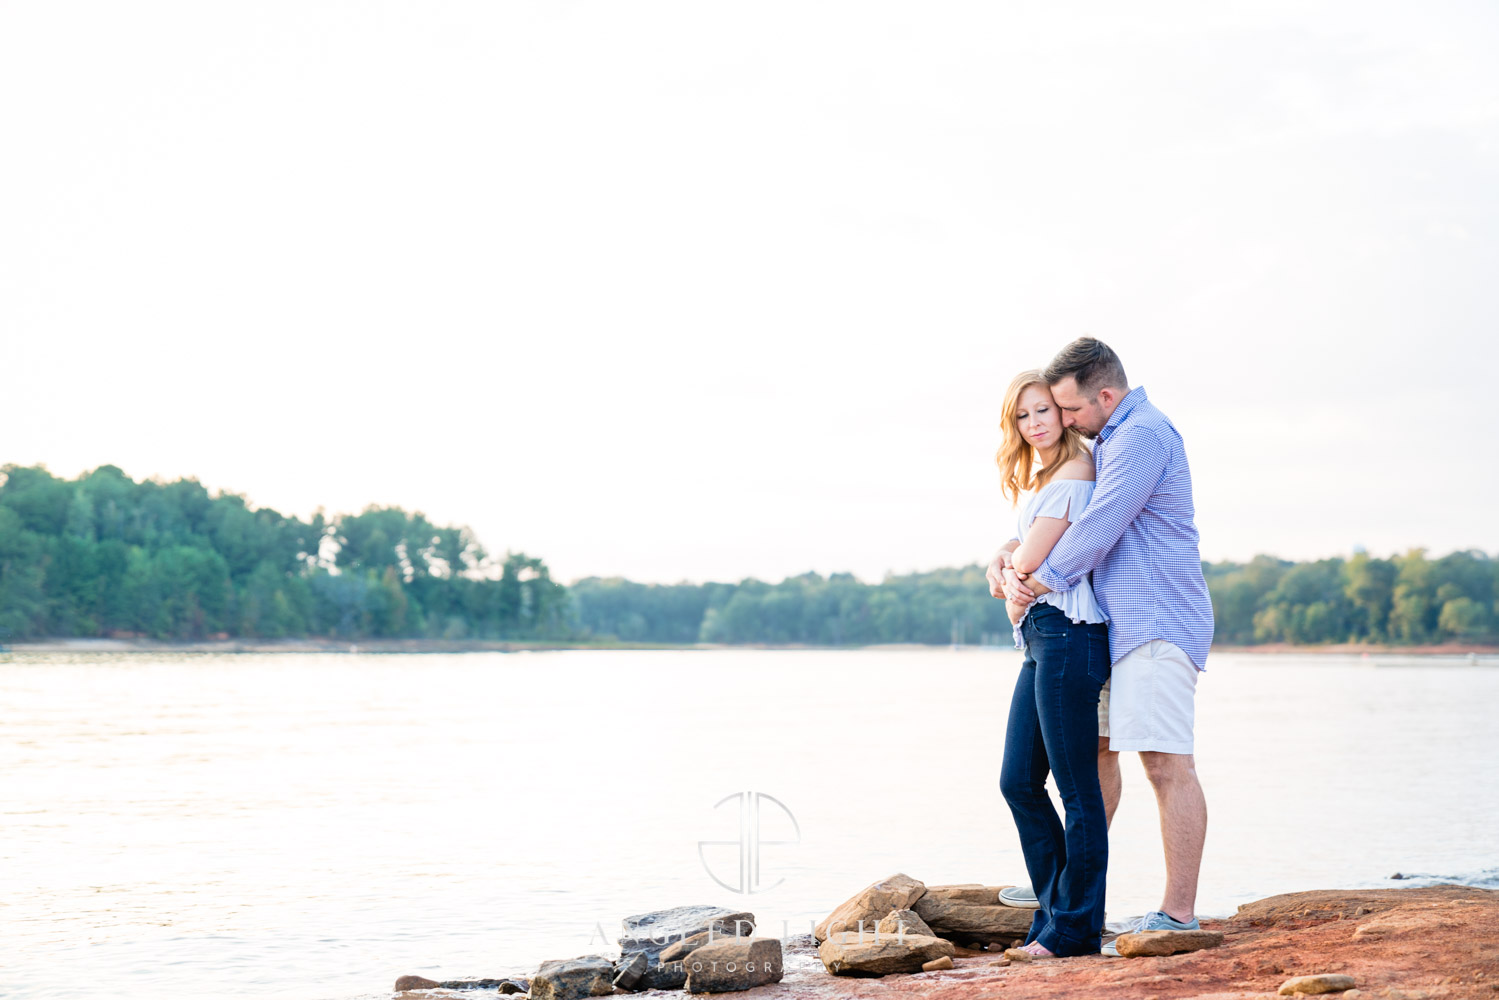 7 tips - for getting Engagement Photos that you will cherish just as much as your Wedding Photos